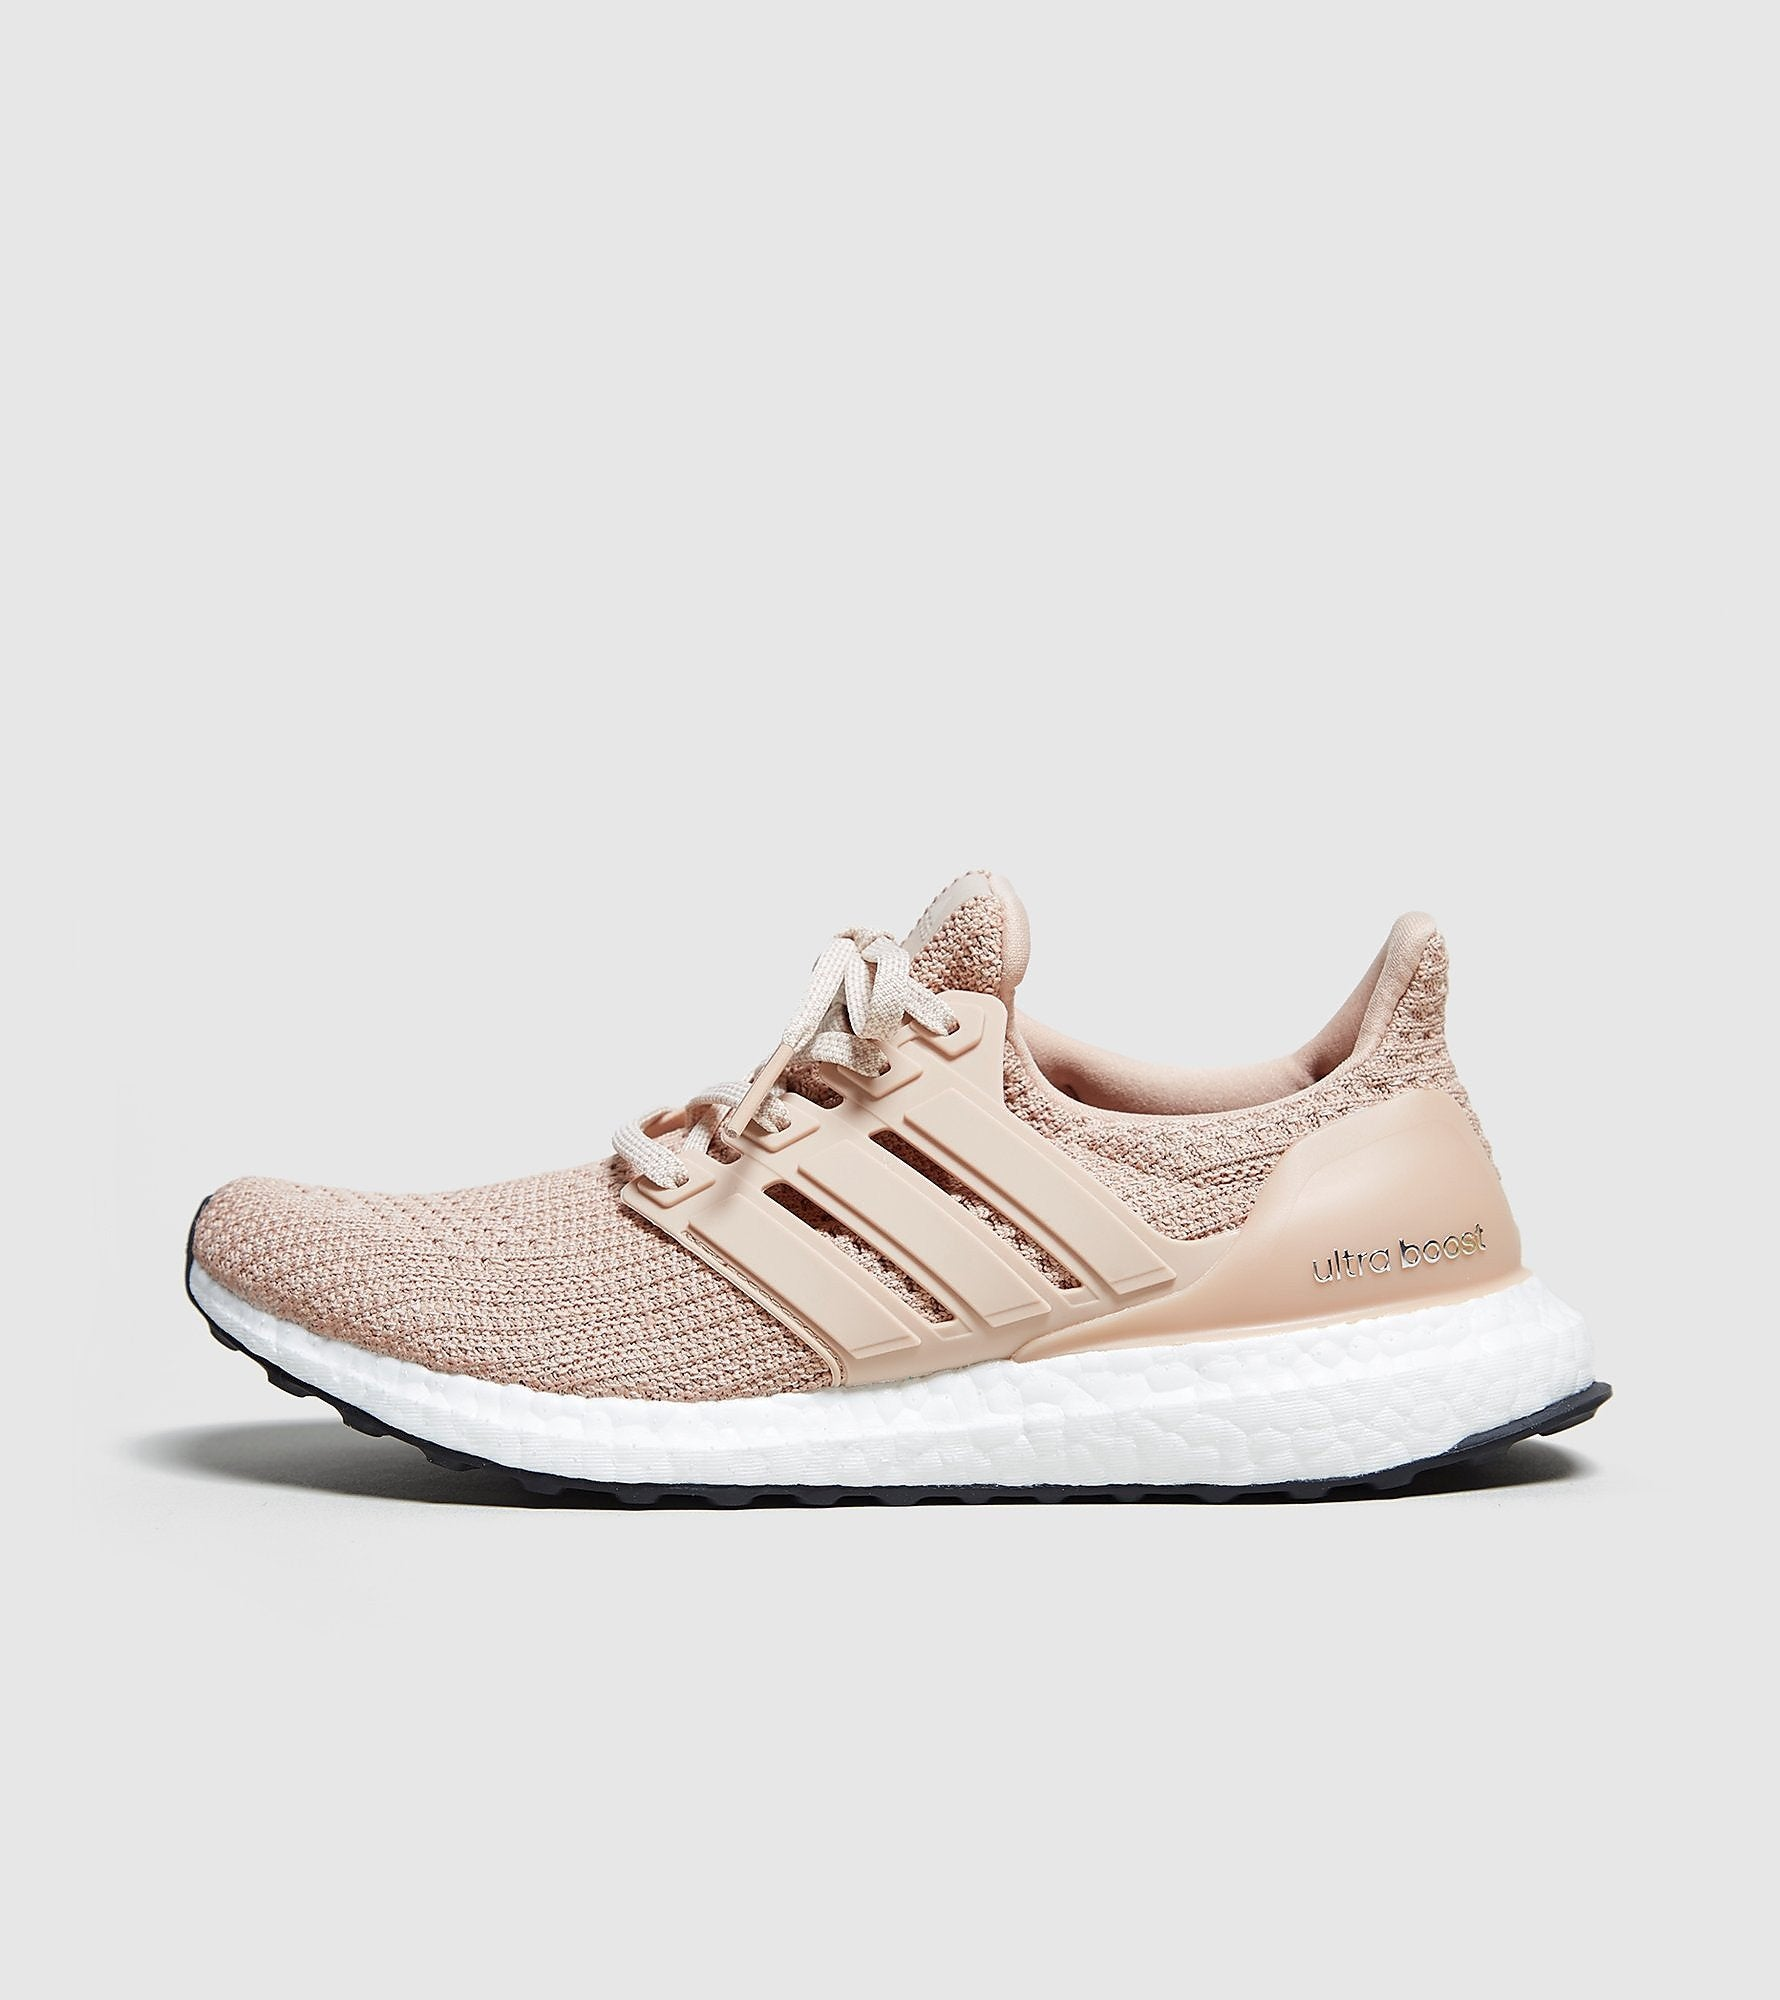 quality design a3526 047f9 Adidas adidas Ultra Boost Women's, Ash Pearl at Soleheaven Curated  Collections